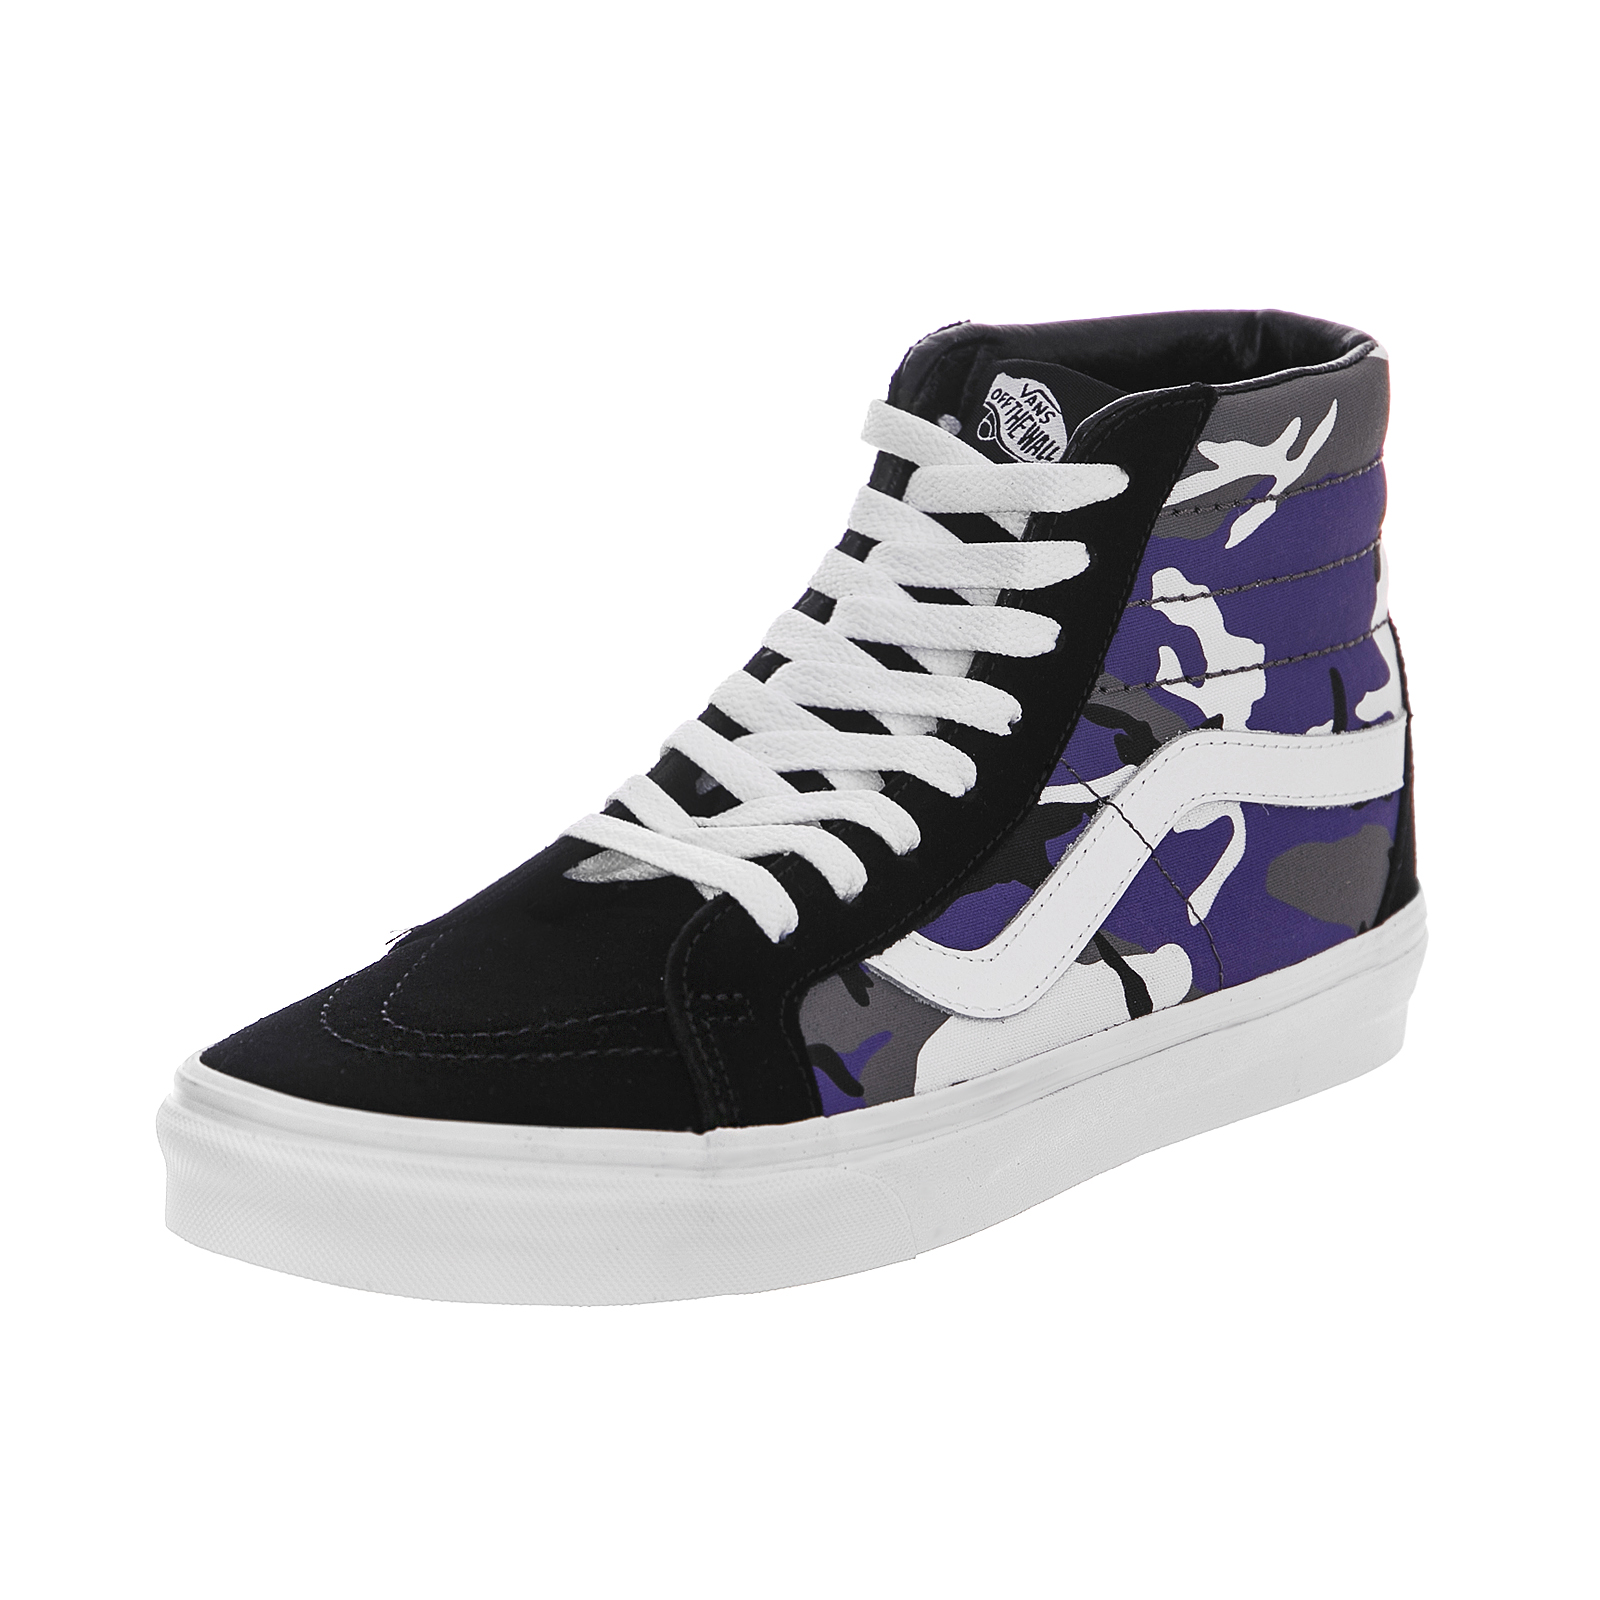 4c8eeb144765 Vans Sneakers Ua Sk8-Hi Reissue (Pop Camo) Black Heliotrope True ...